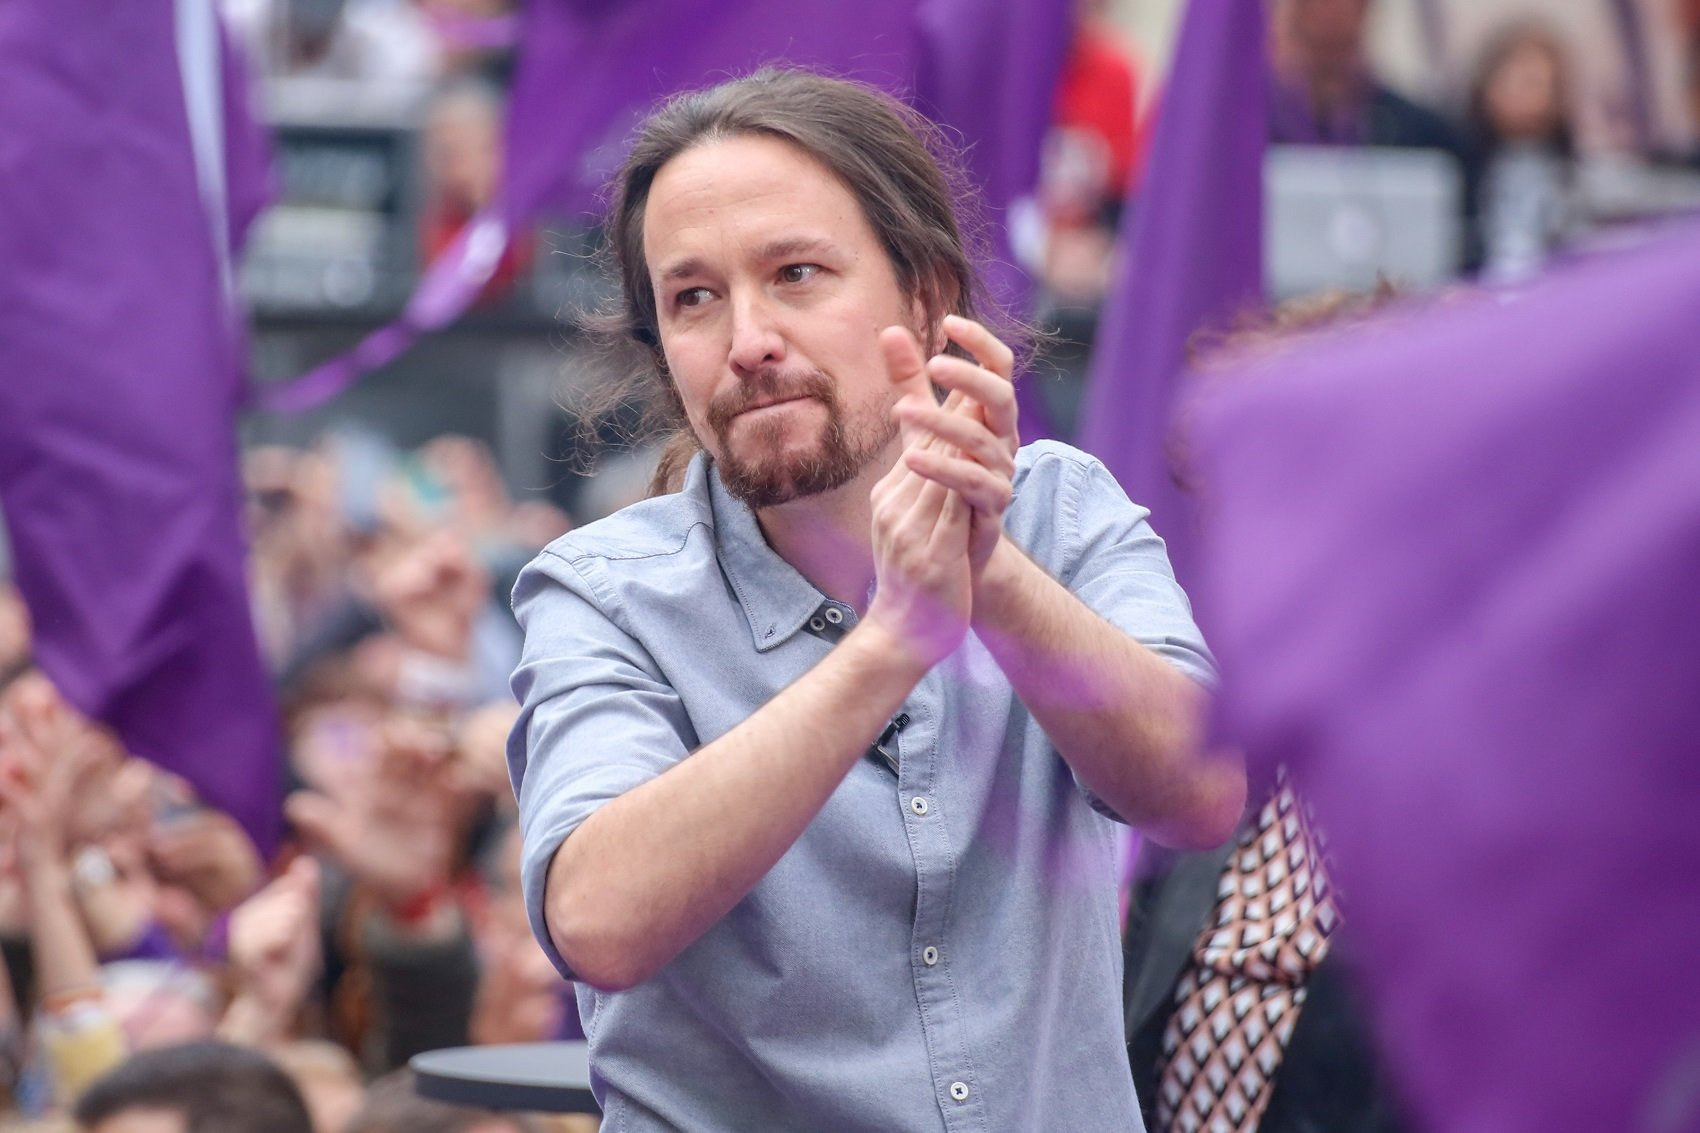 pablo iglesias miting madrid europa press